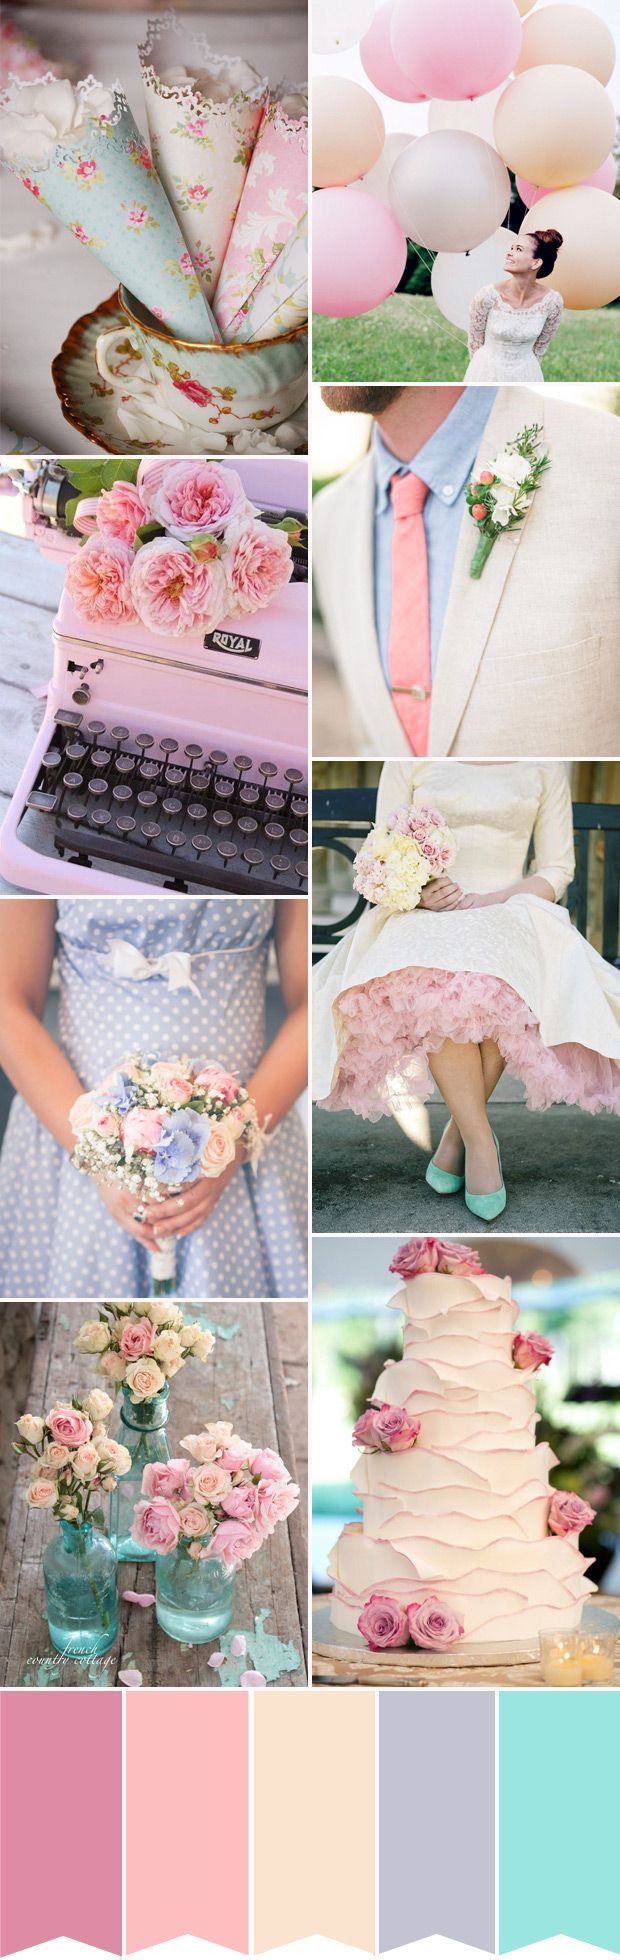 A super girly pink and blue colour palette with a vintage twist